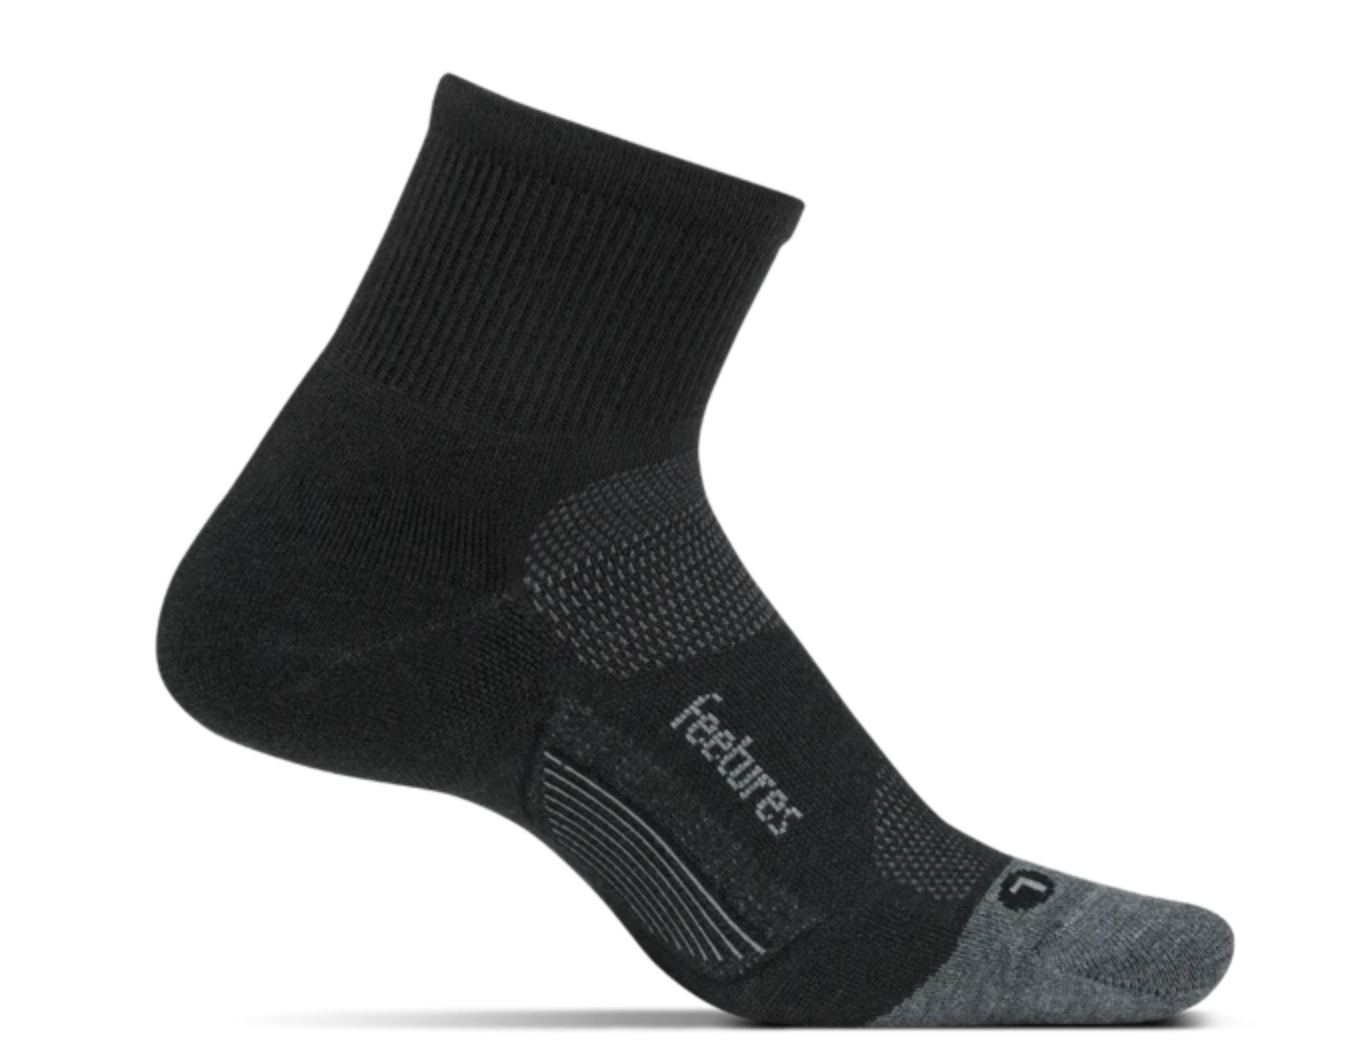 best running socks - black ankle